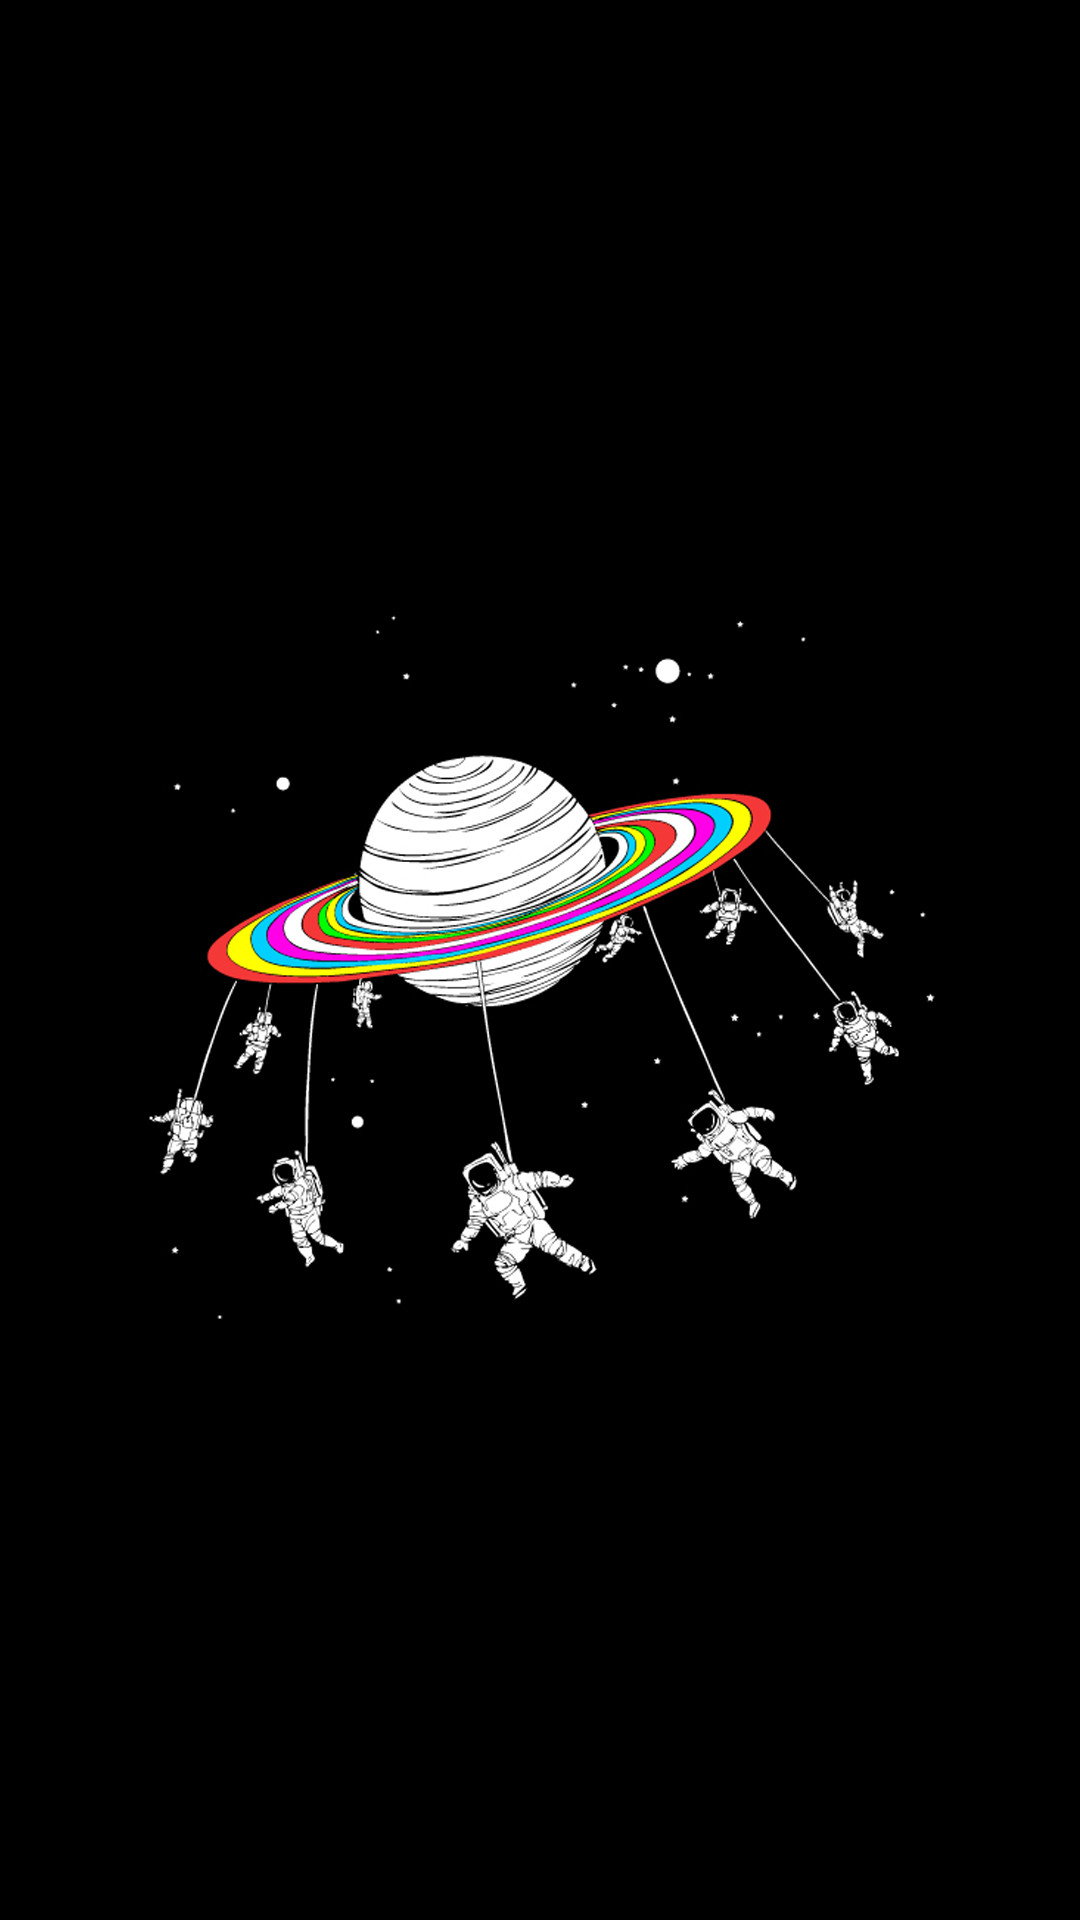 1080x1920 Astronauts Merry Go Round Planet Space HD Wallpaper for iPhone 6